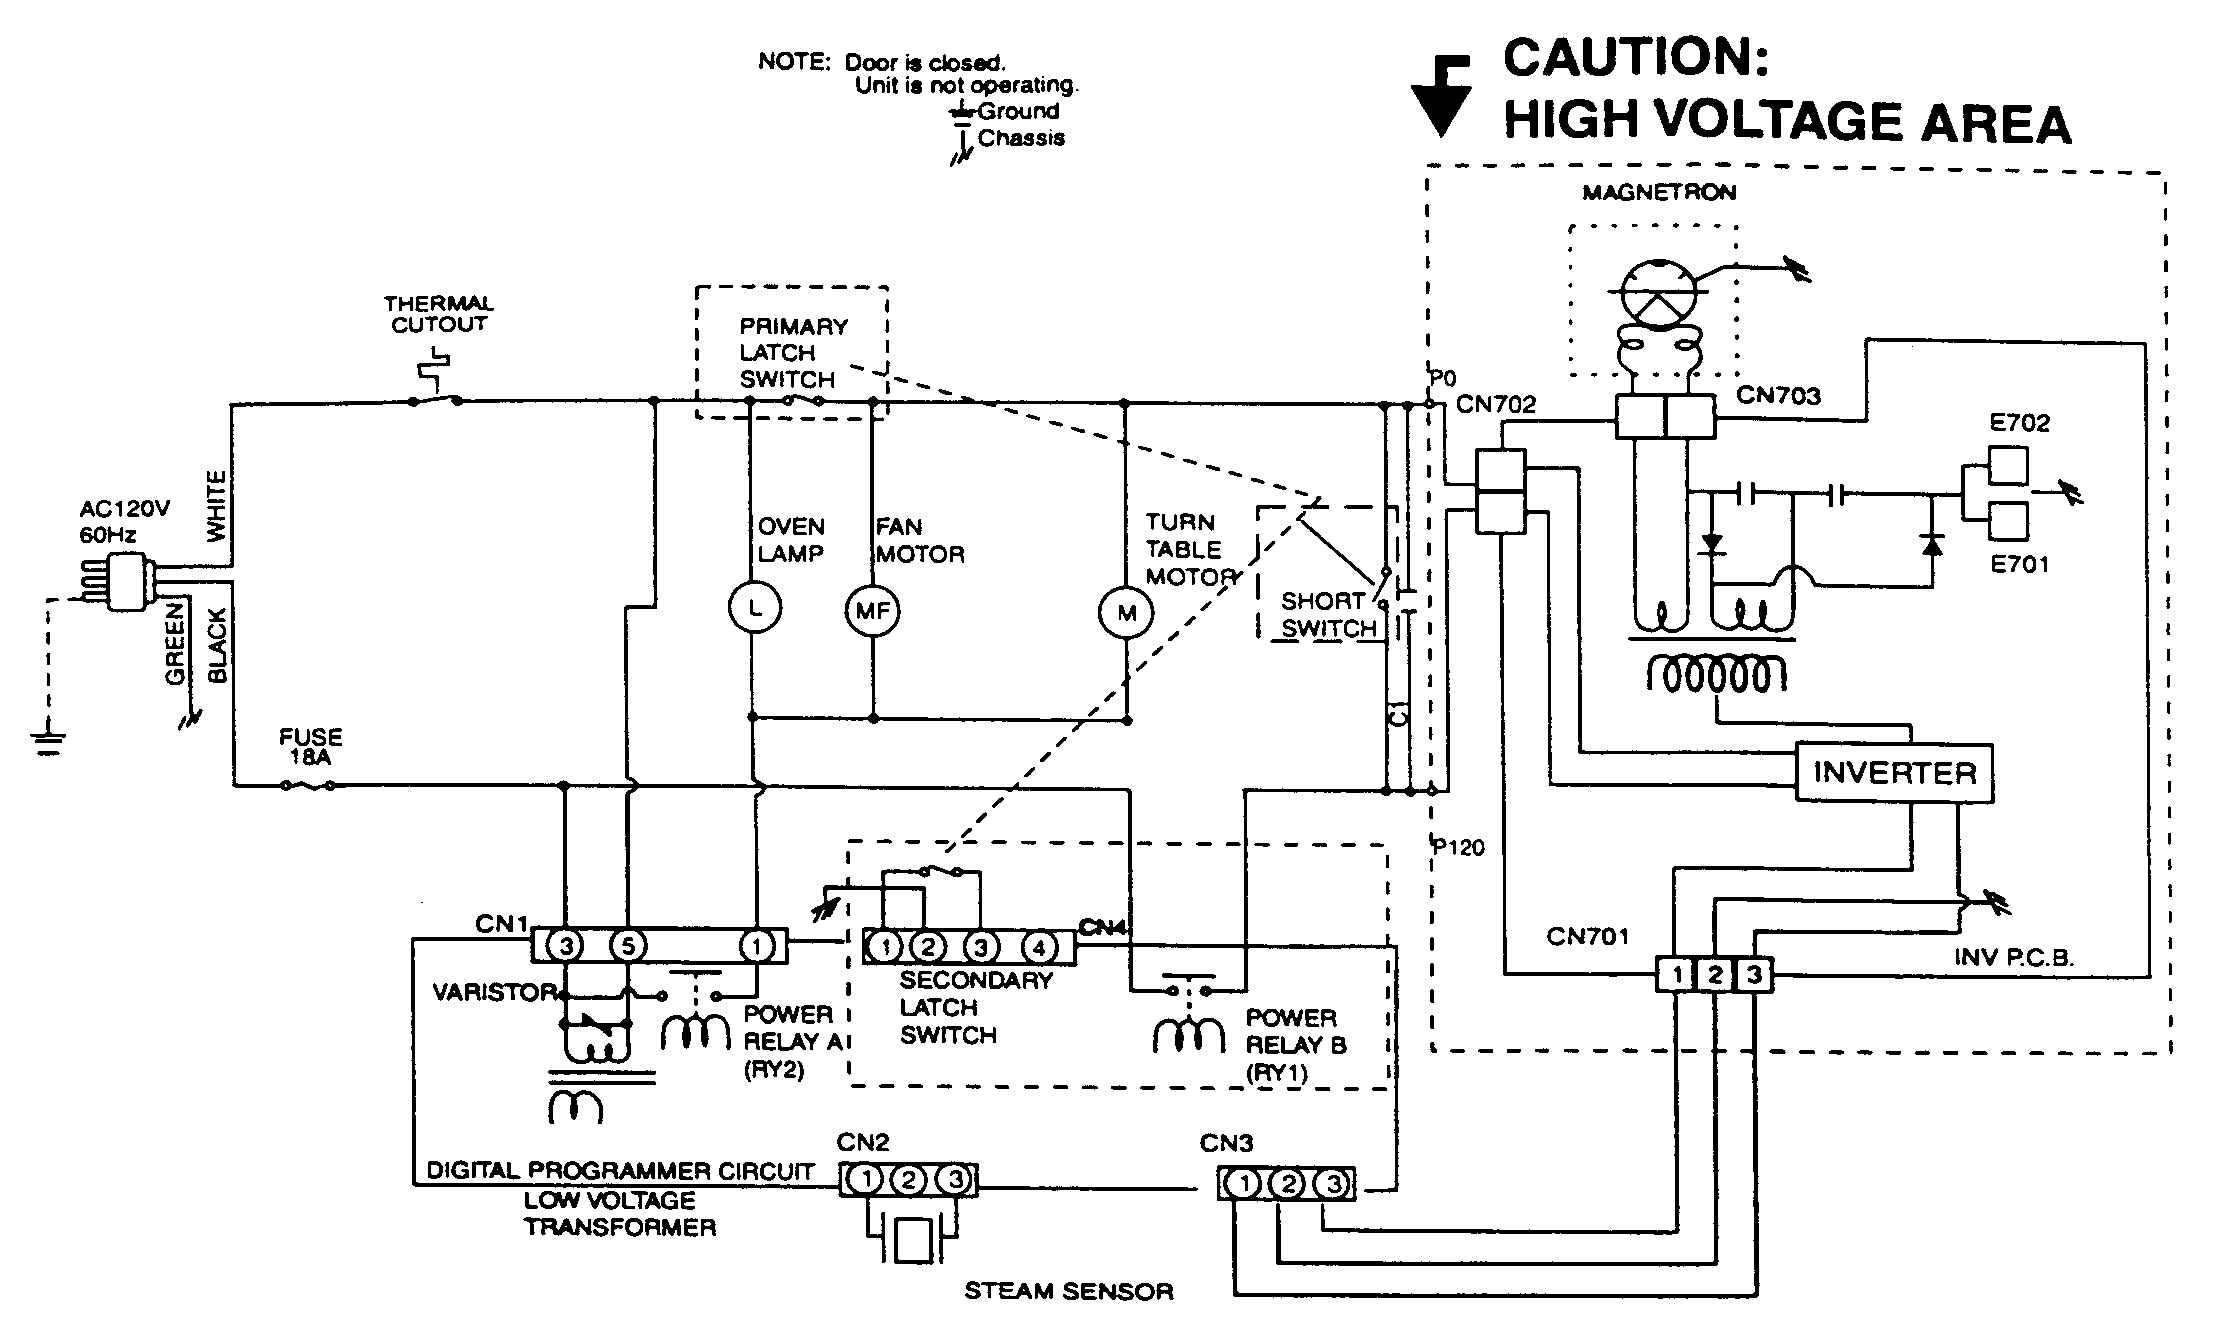 microwave electrical schematic